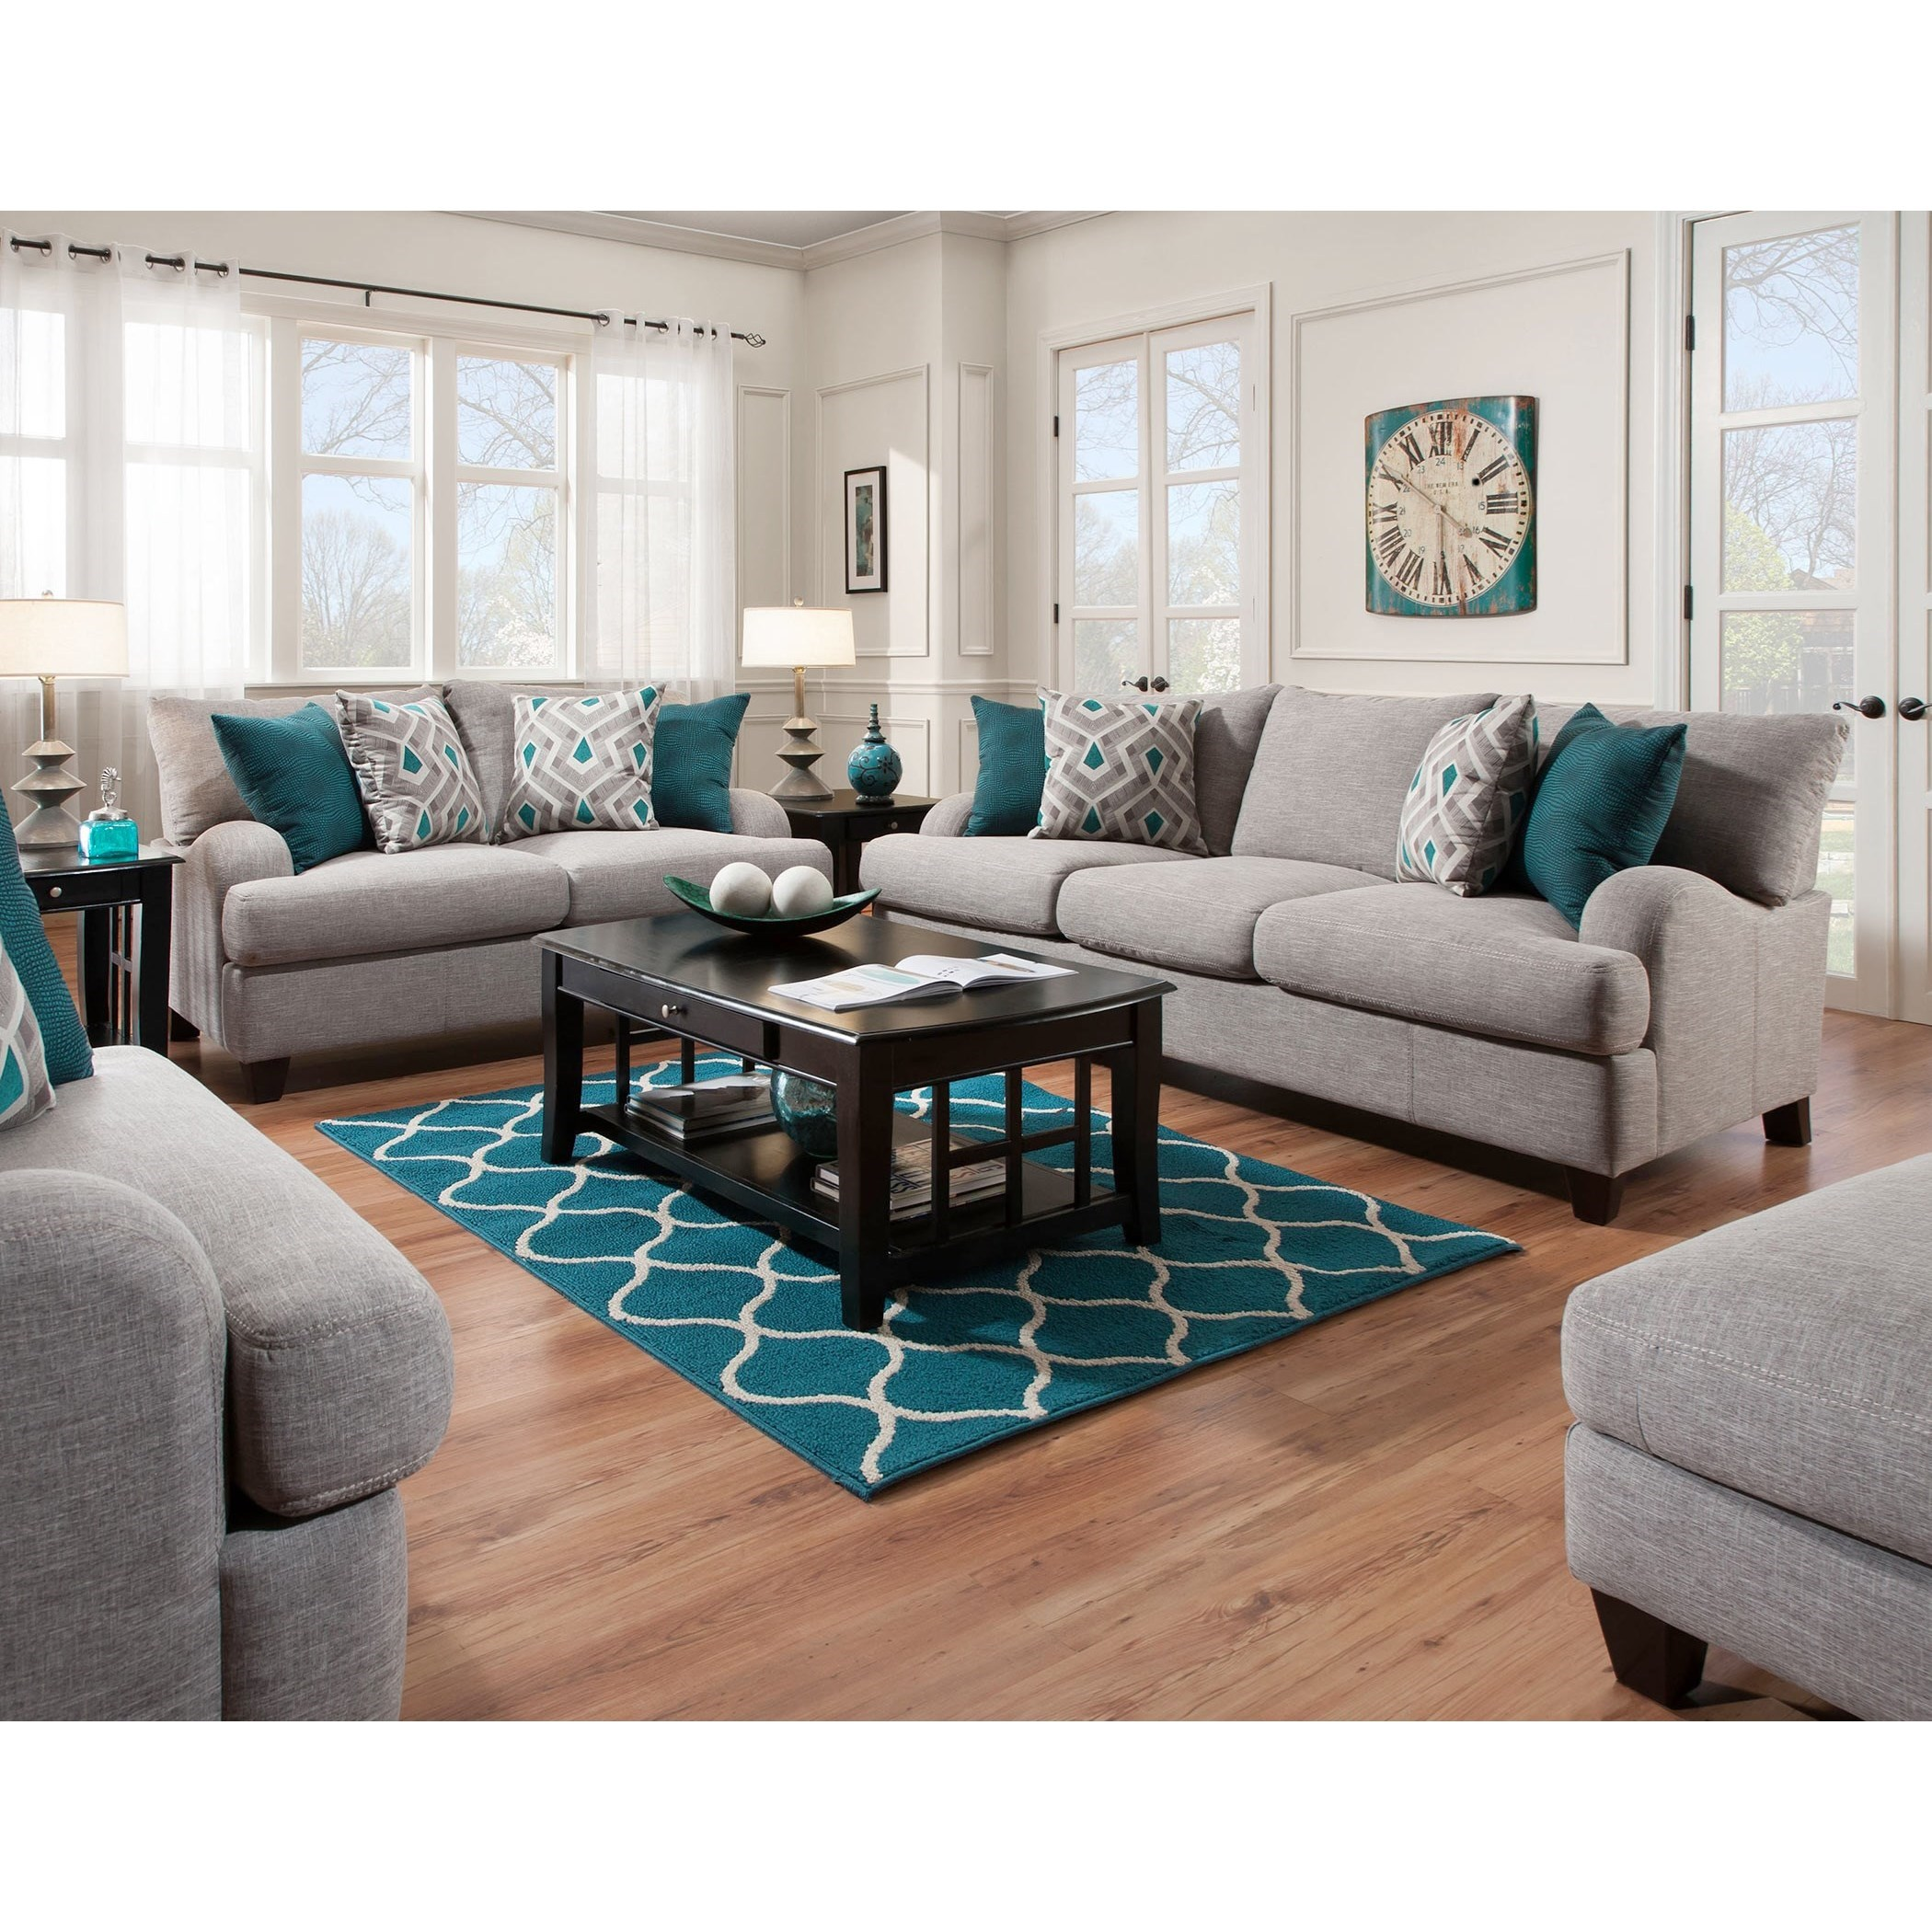 Paradigm Living Room Group by Franklin at Wilcox Furniture